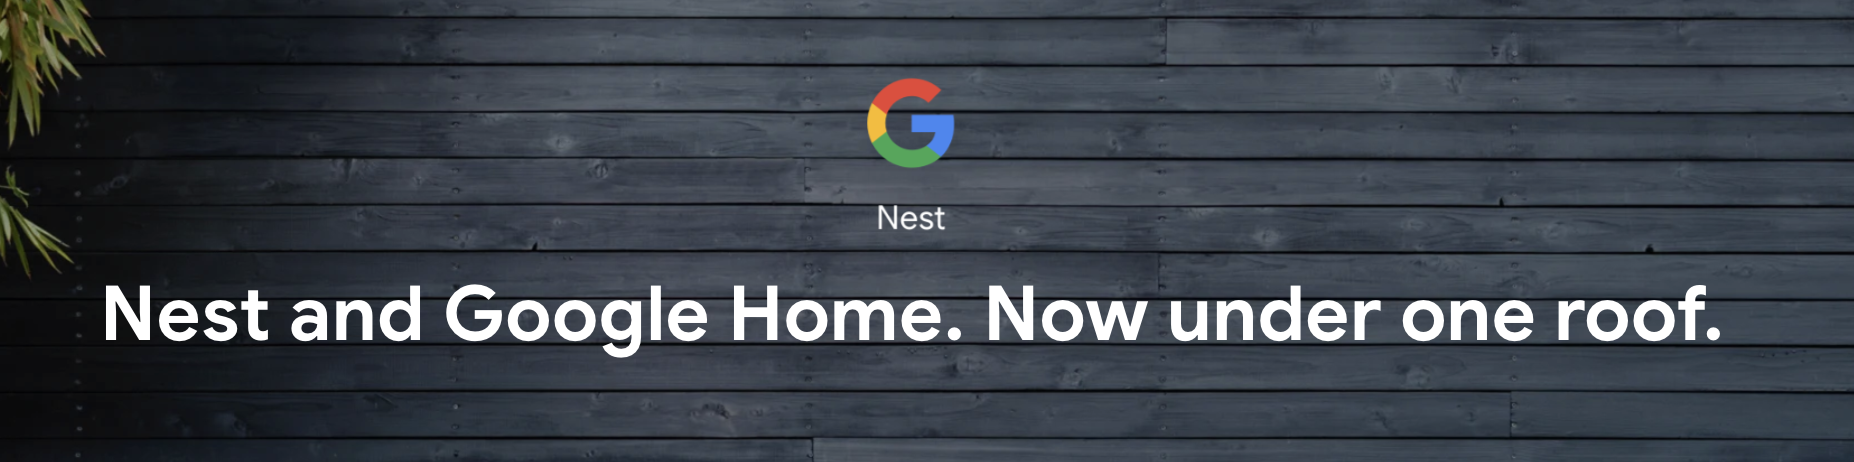 Nest, the company, died at Google I/O 2019 | Ars Technica